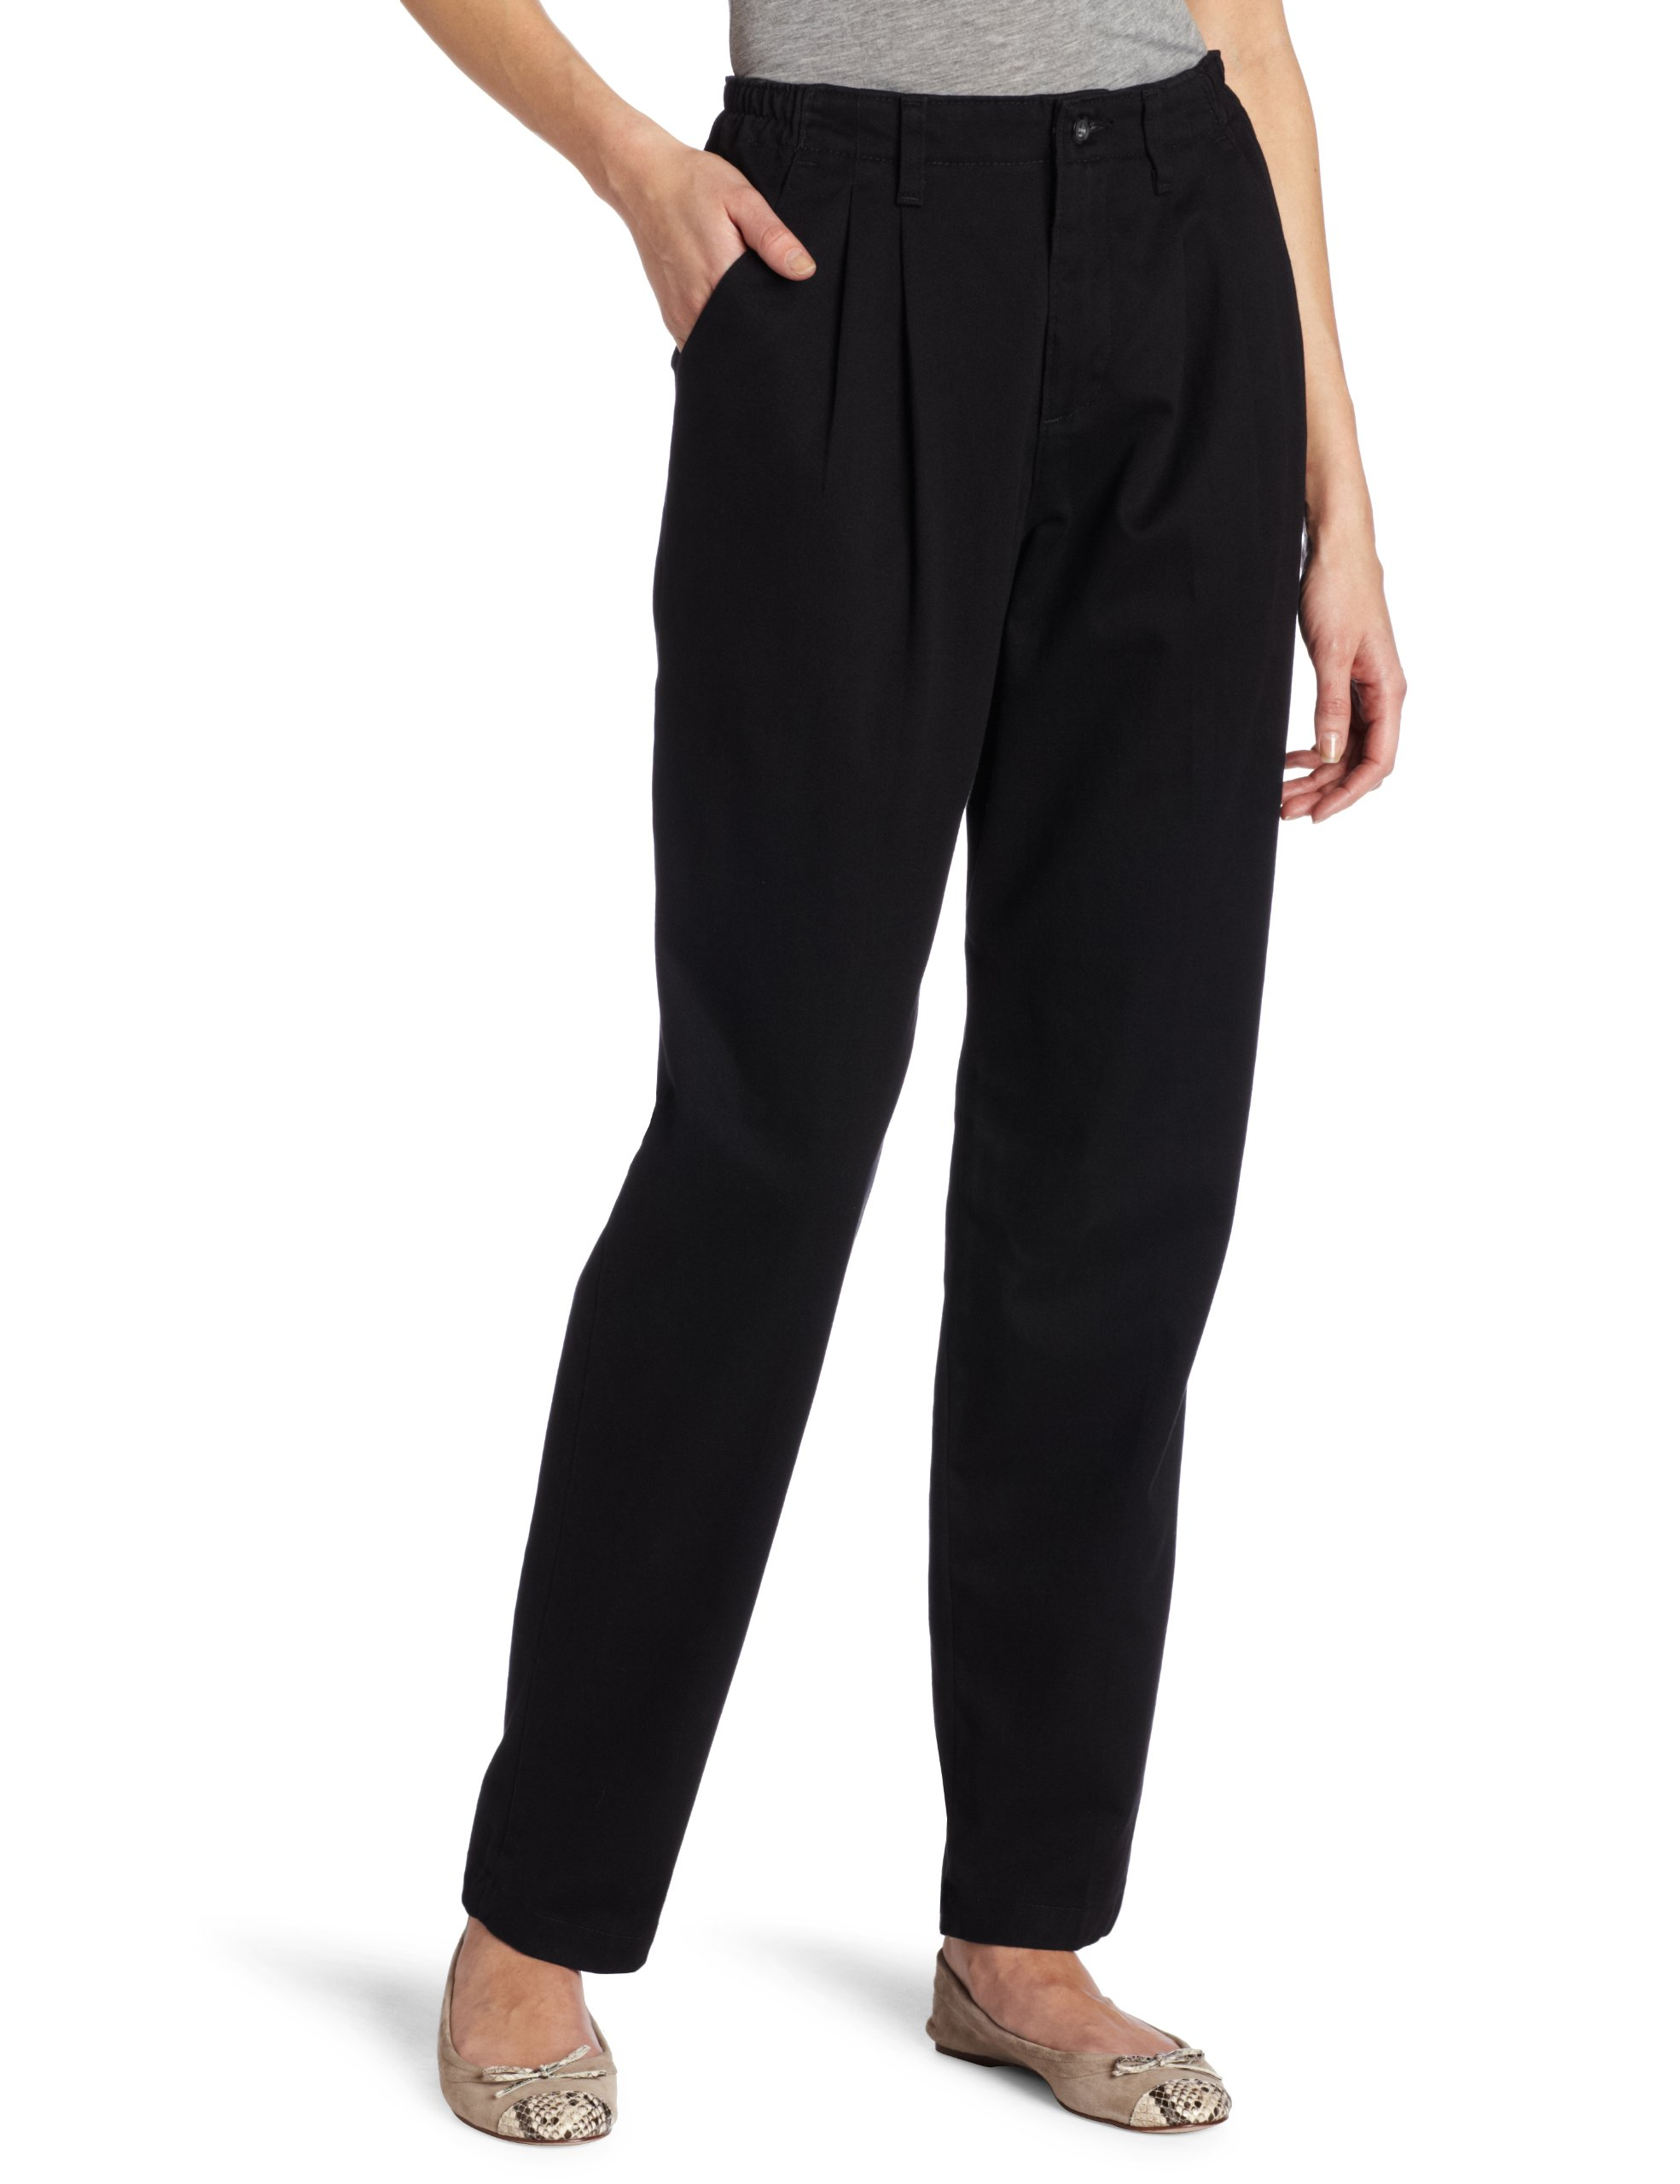 Lee Women's Relaxed-Fit Pleated Pant